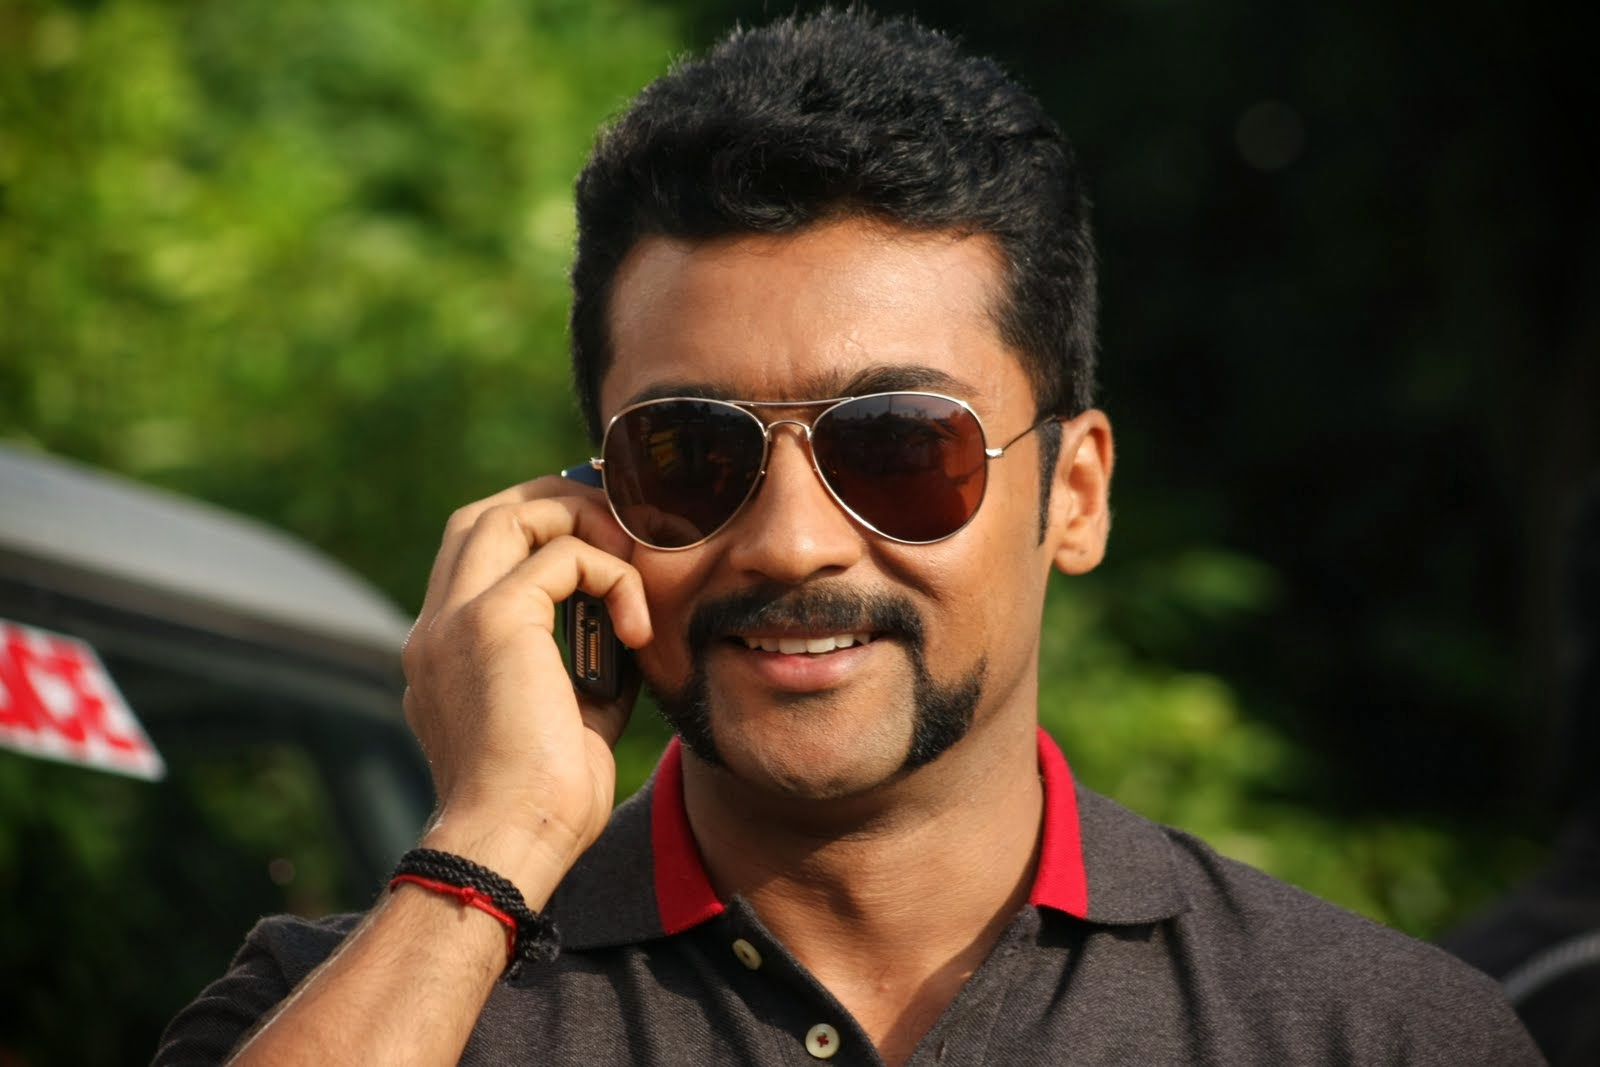 Surya singam hd wallpapers atozcinegallery surya singam hd wallpapers altavistaventures Image collections